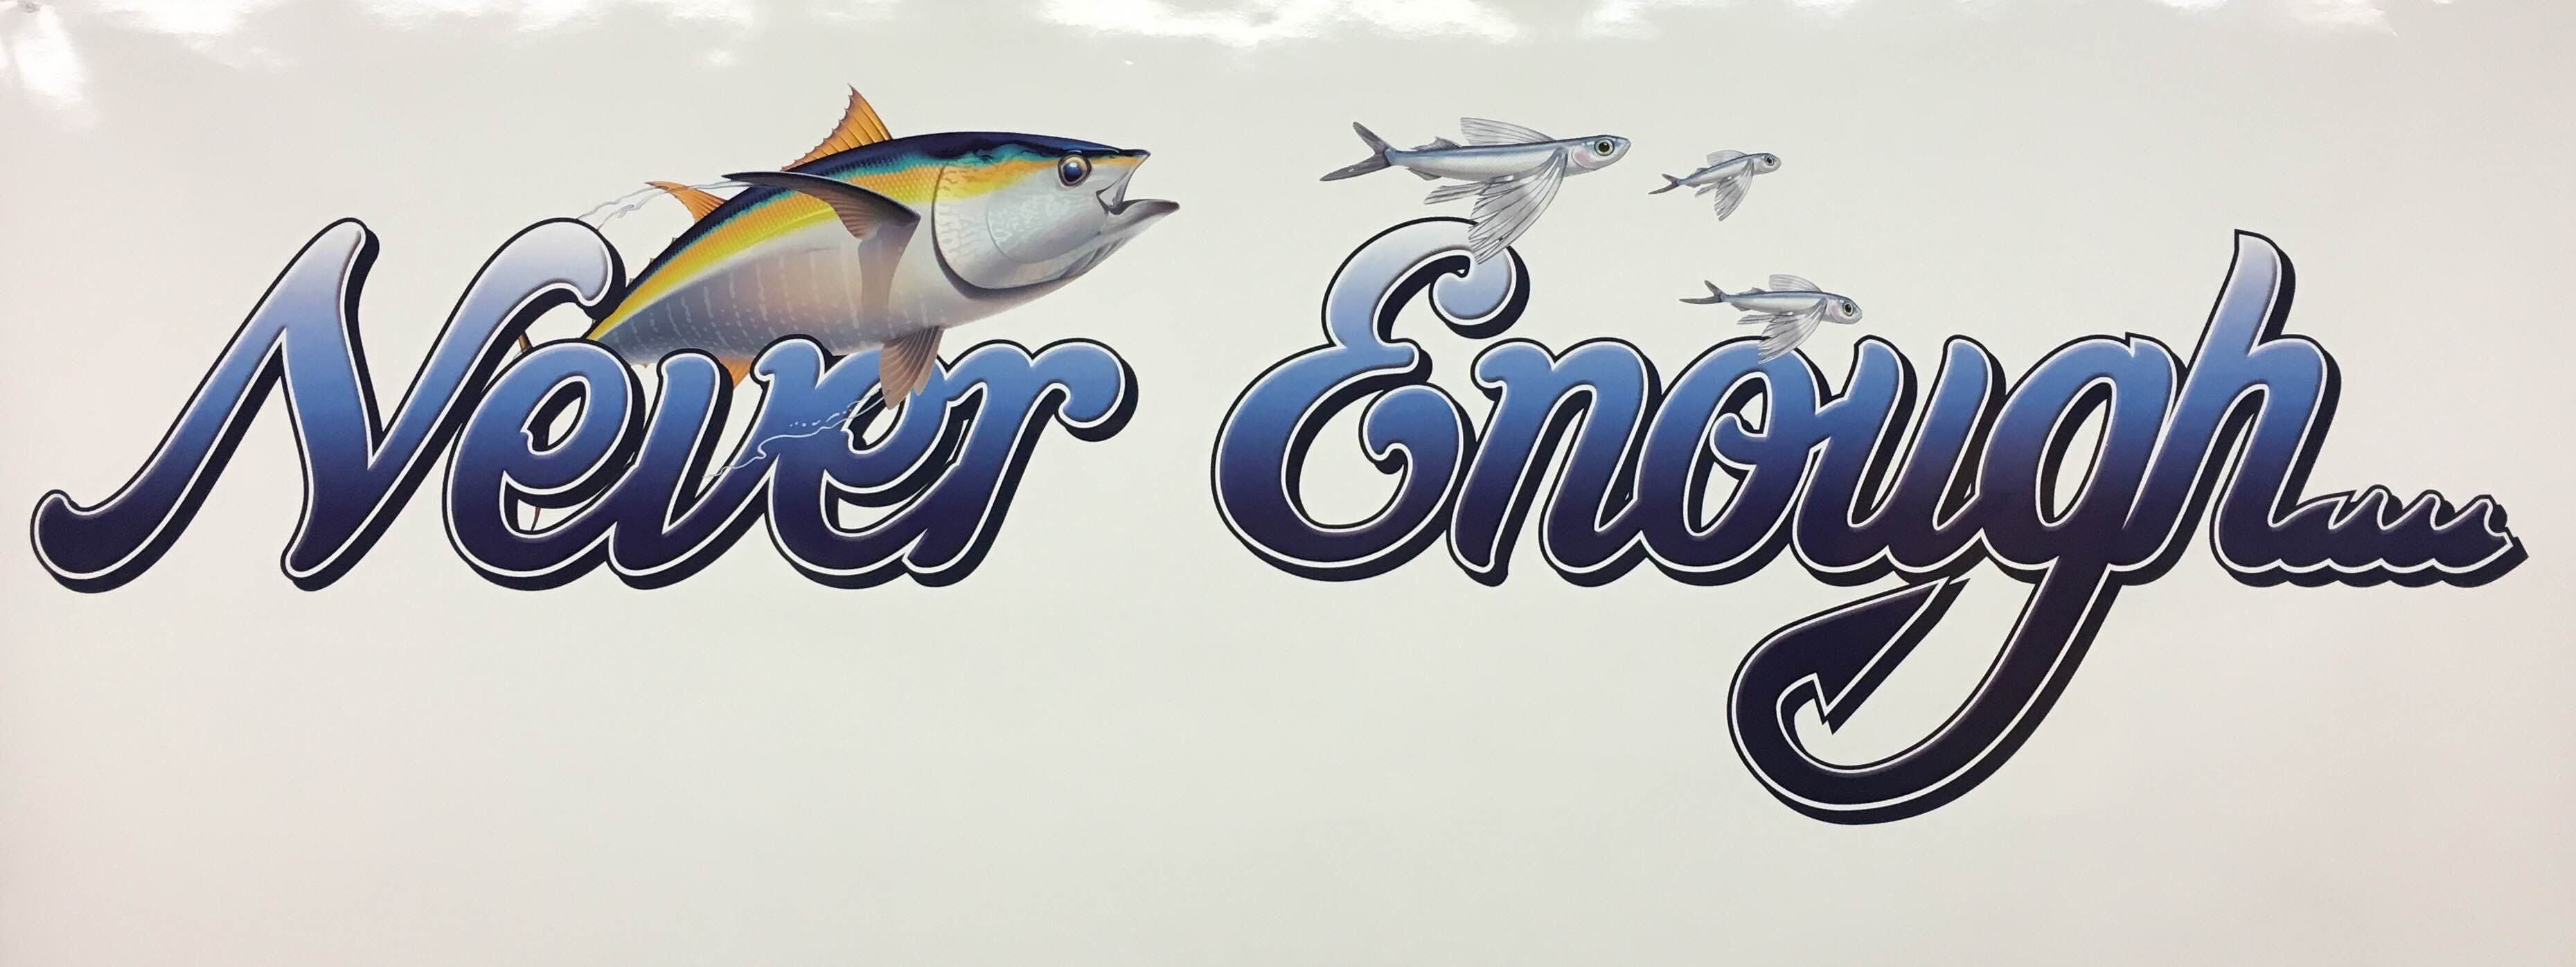 here are a few photos of the custom boat lettering on the never enough 3m vinyl boat lettering graphicdesign custom digitalart coastalsign lbi